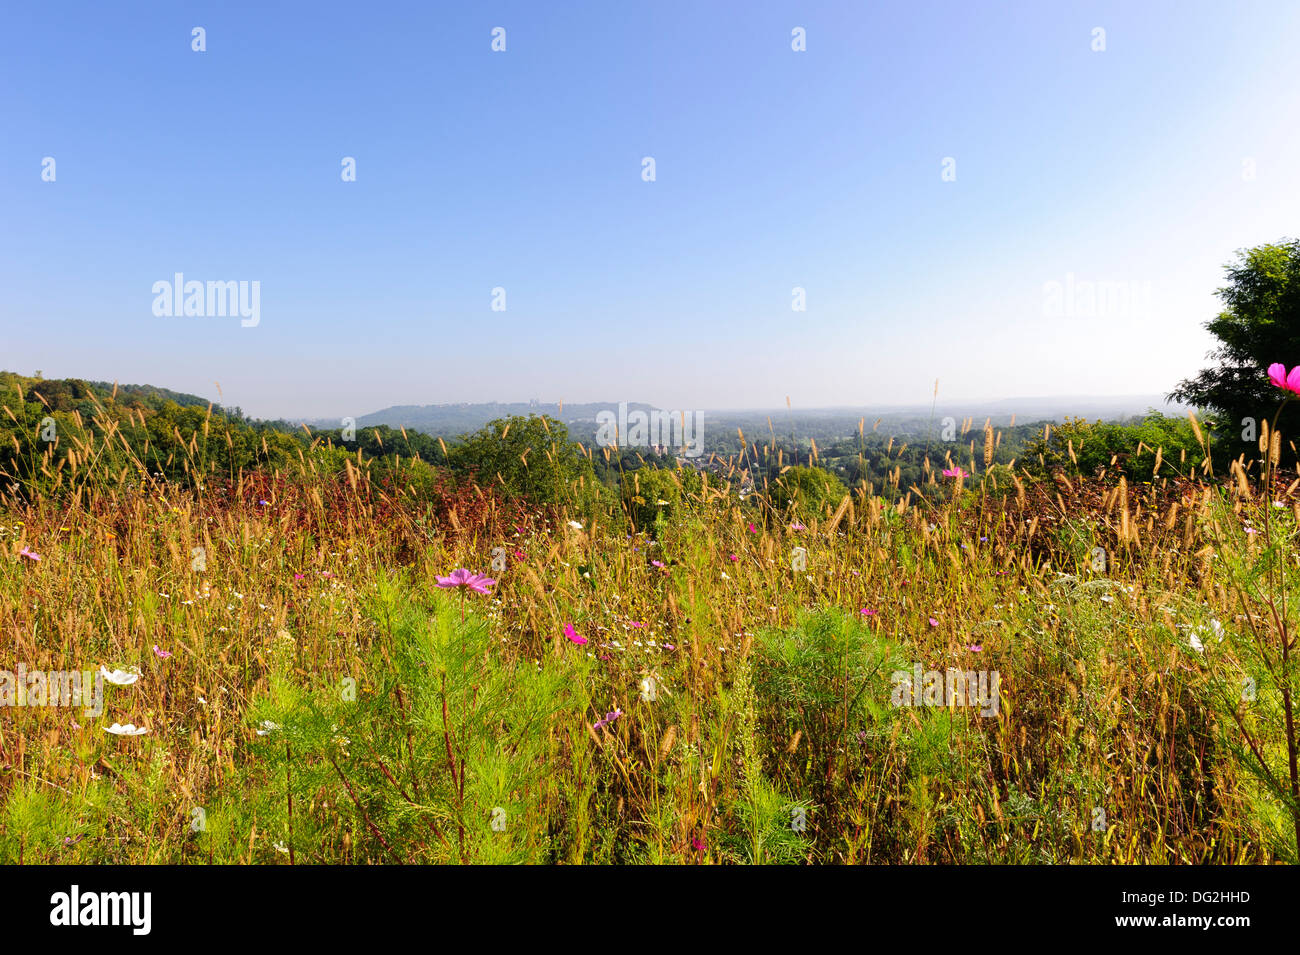 Wild Flowers, France - Stock Image